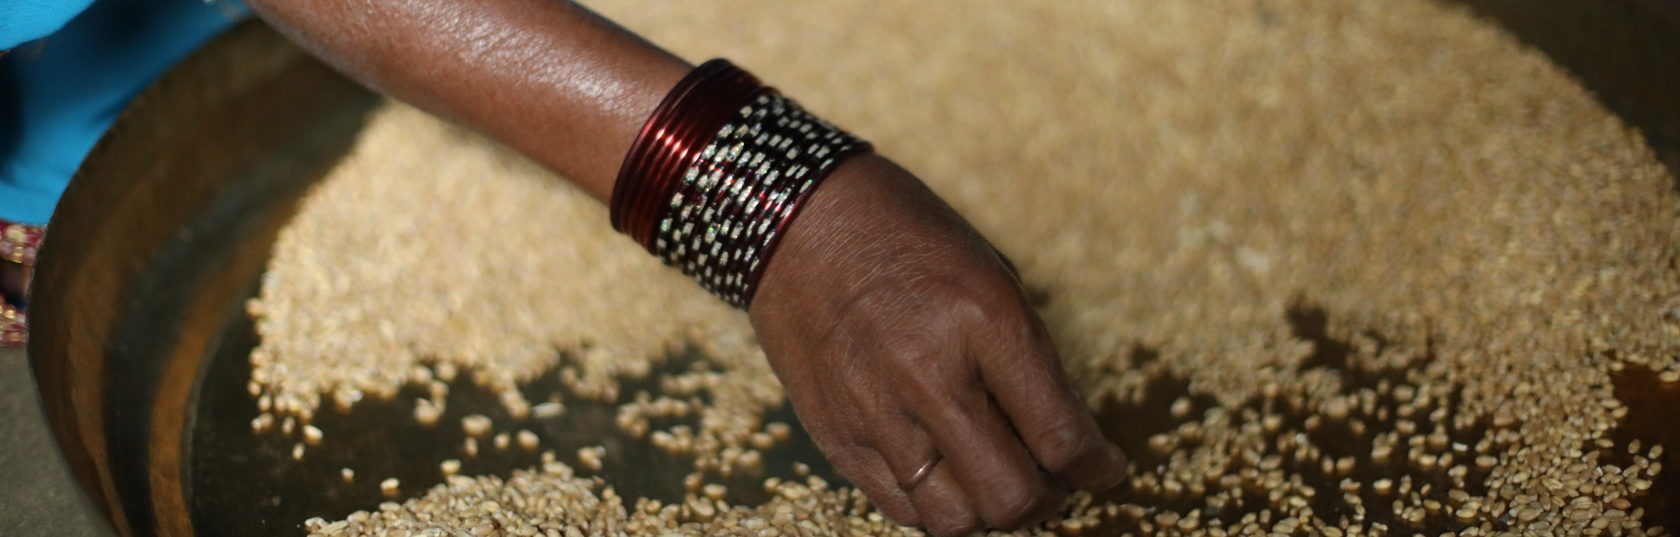 Close up shot of a woman's hand in a pan of grains.